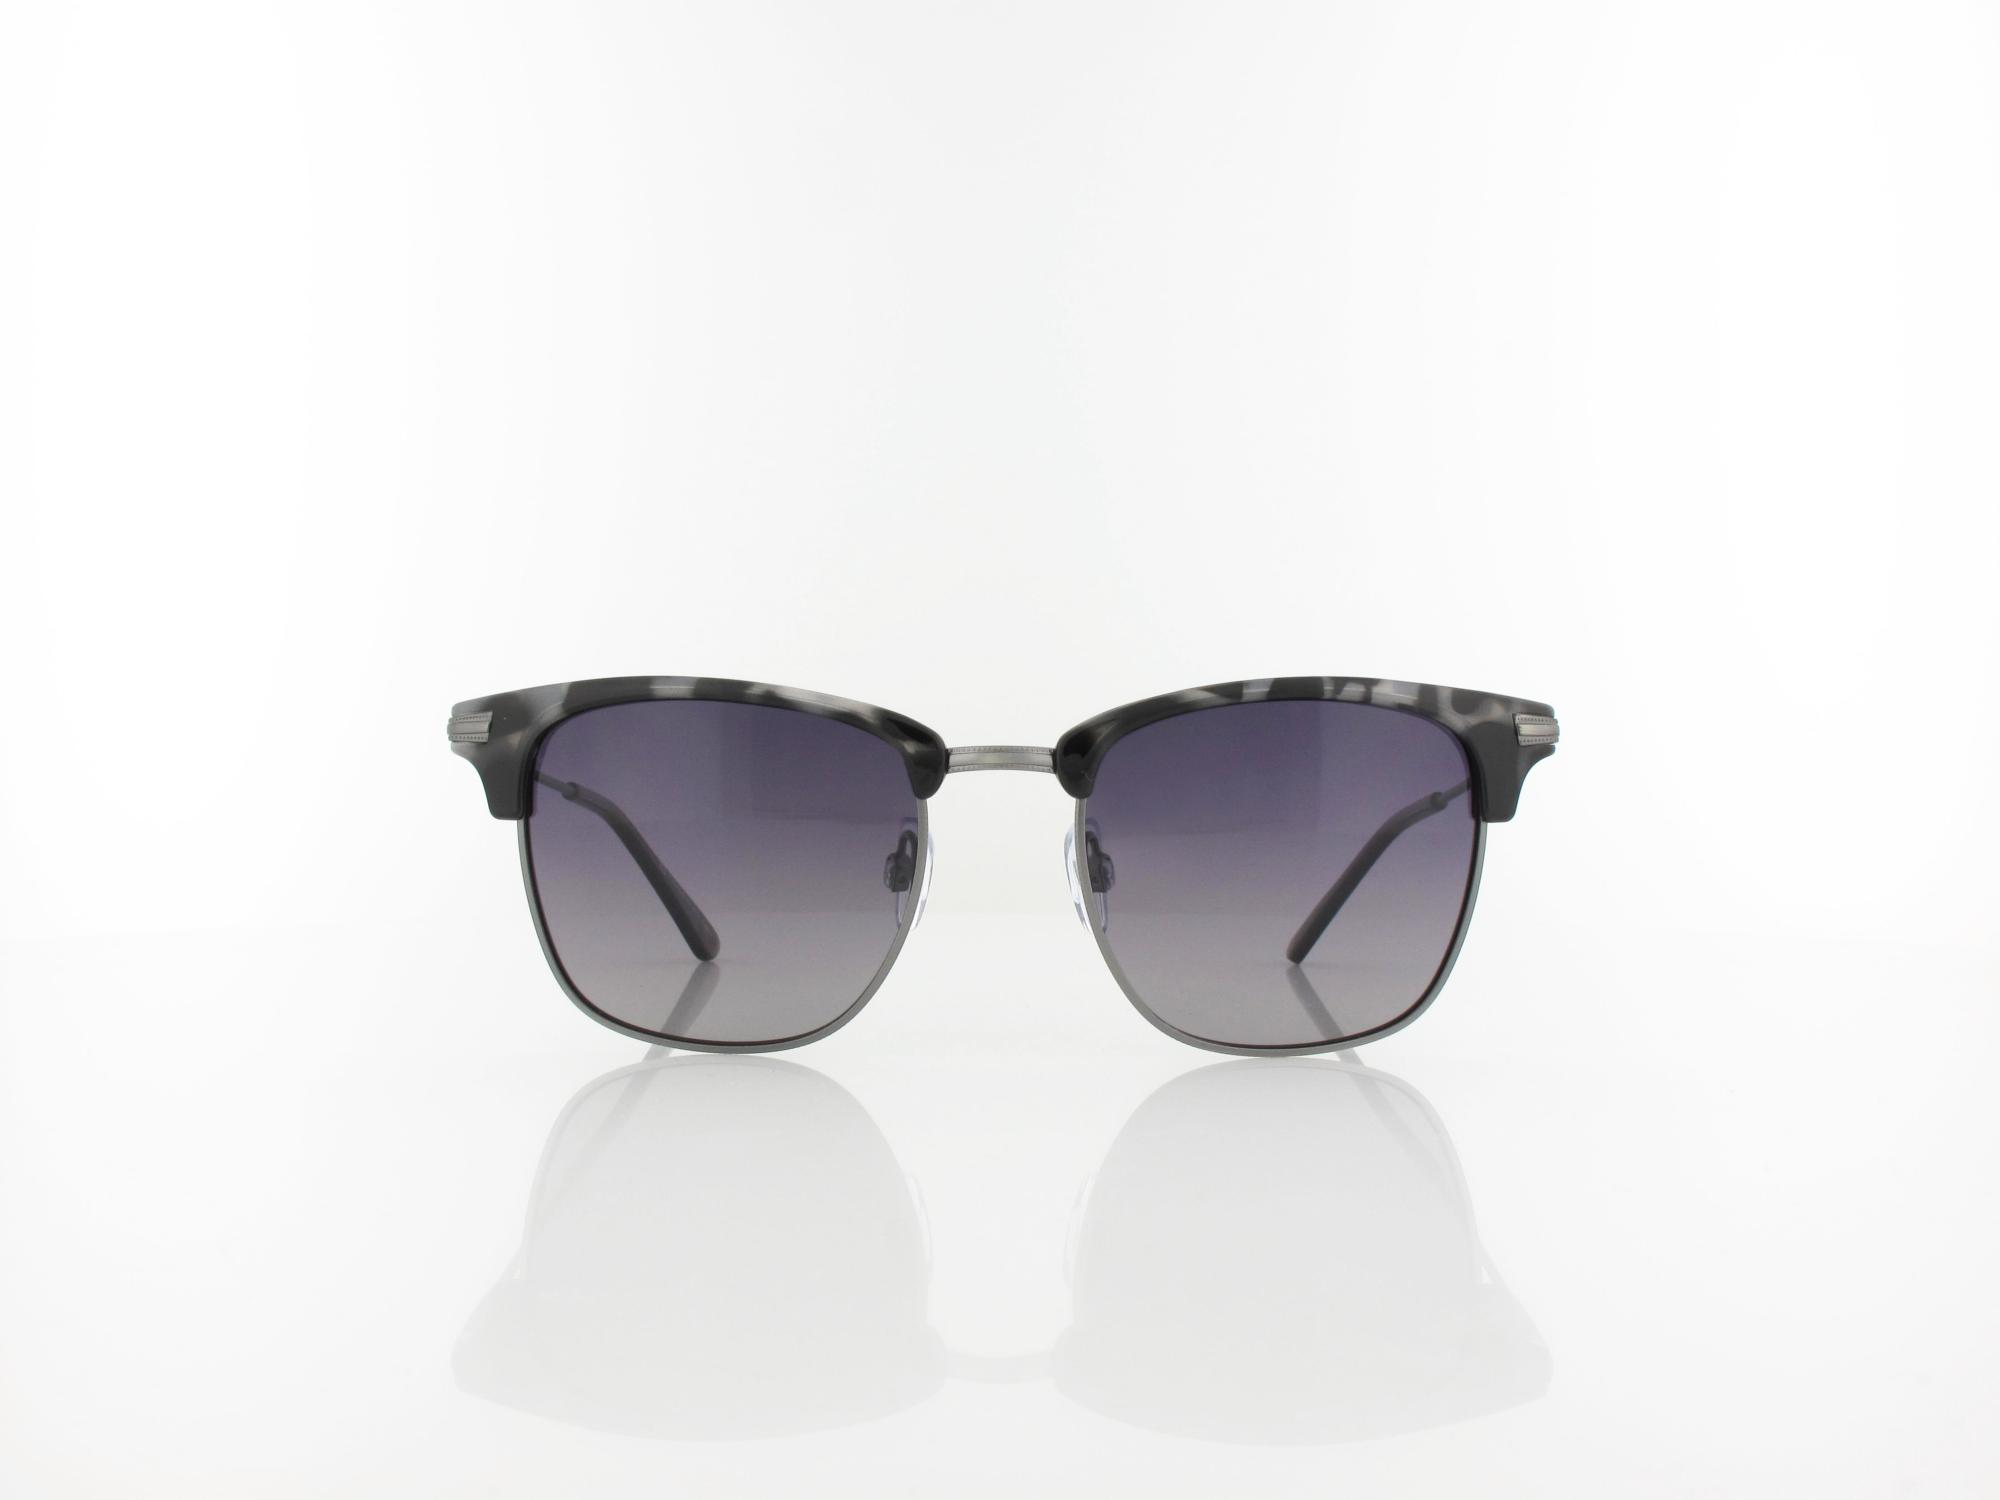 HIS polarized | HP74100-1 51 | havana grey / grey gradient polarized